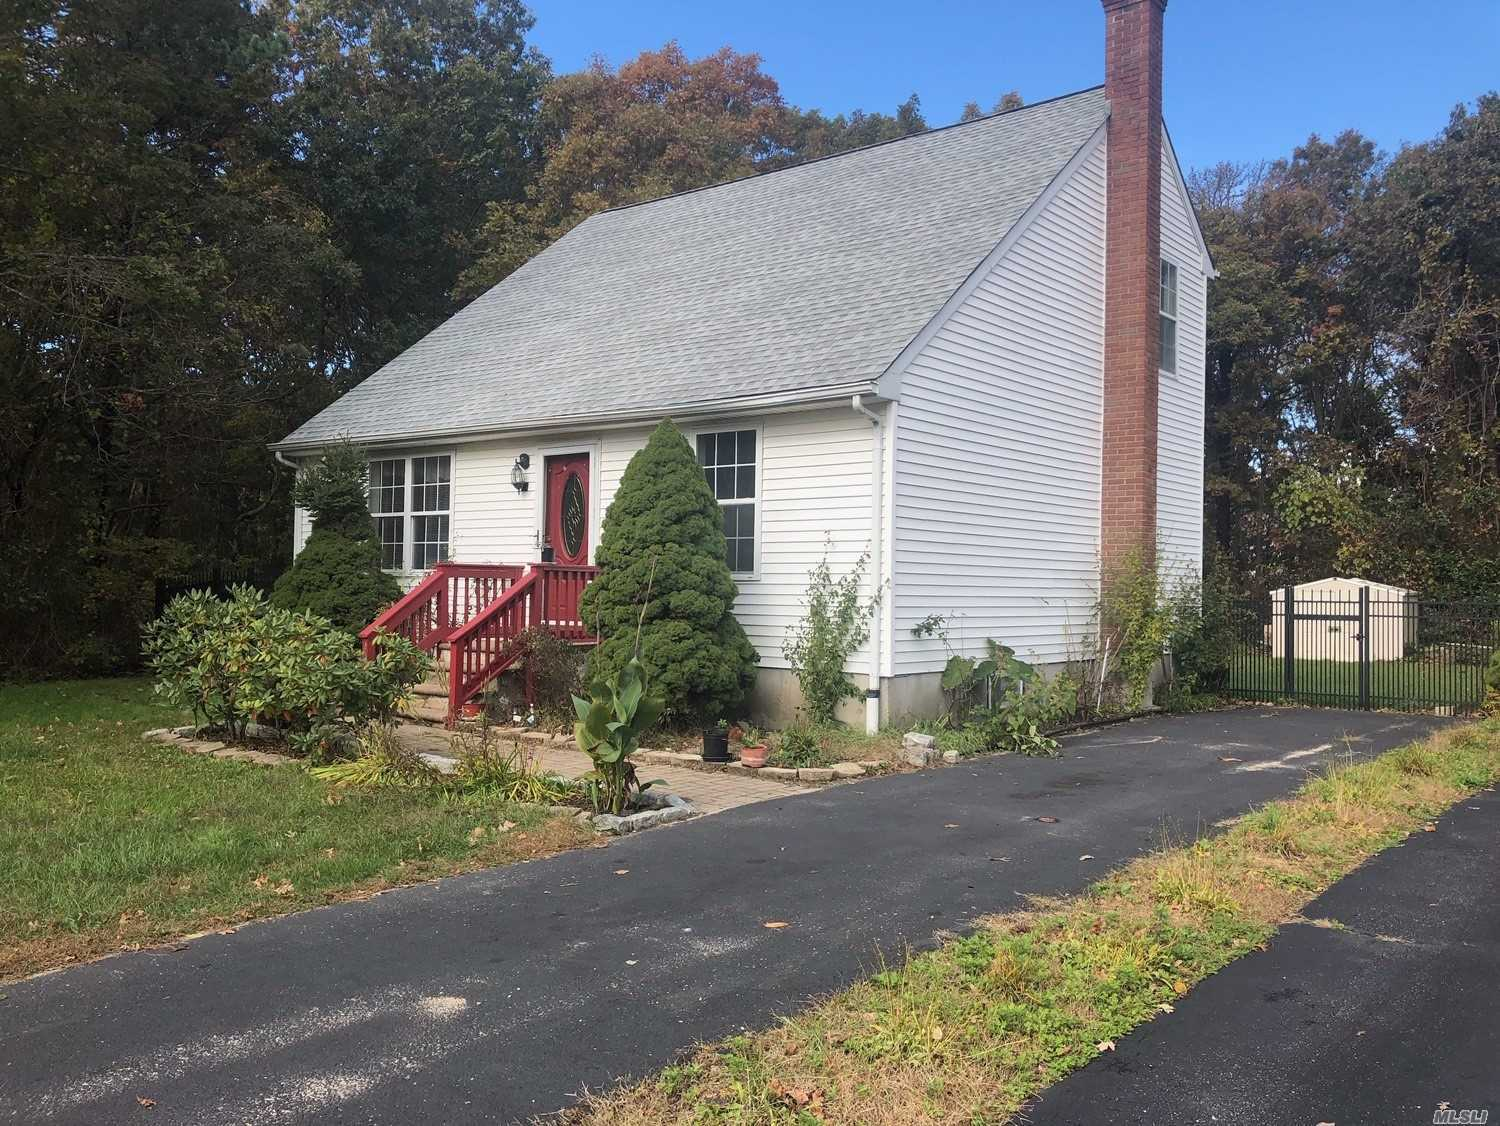 Beautiful Cape Brand New Roof, Four Bedroom, Two Full Bath,  Vinyl Siding. Low Maintenance, Fenced In Yard, Wrought Iron Fence Belgium Block Walk Way. Turn Key Ready To Move In Tomorrow. 5-Minute Drive To Smith Point Ocean. Nice Flat Private Property.